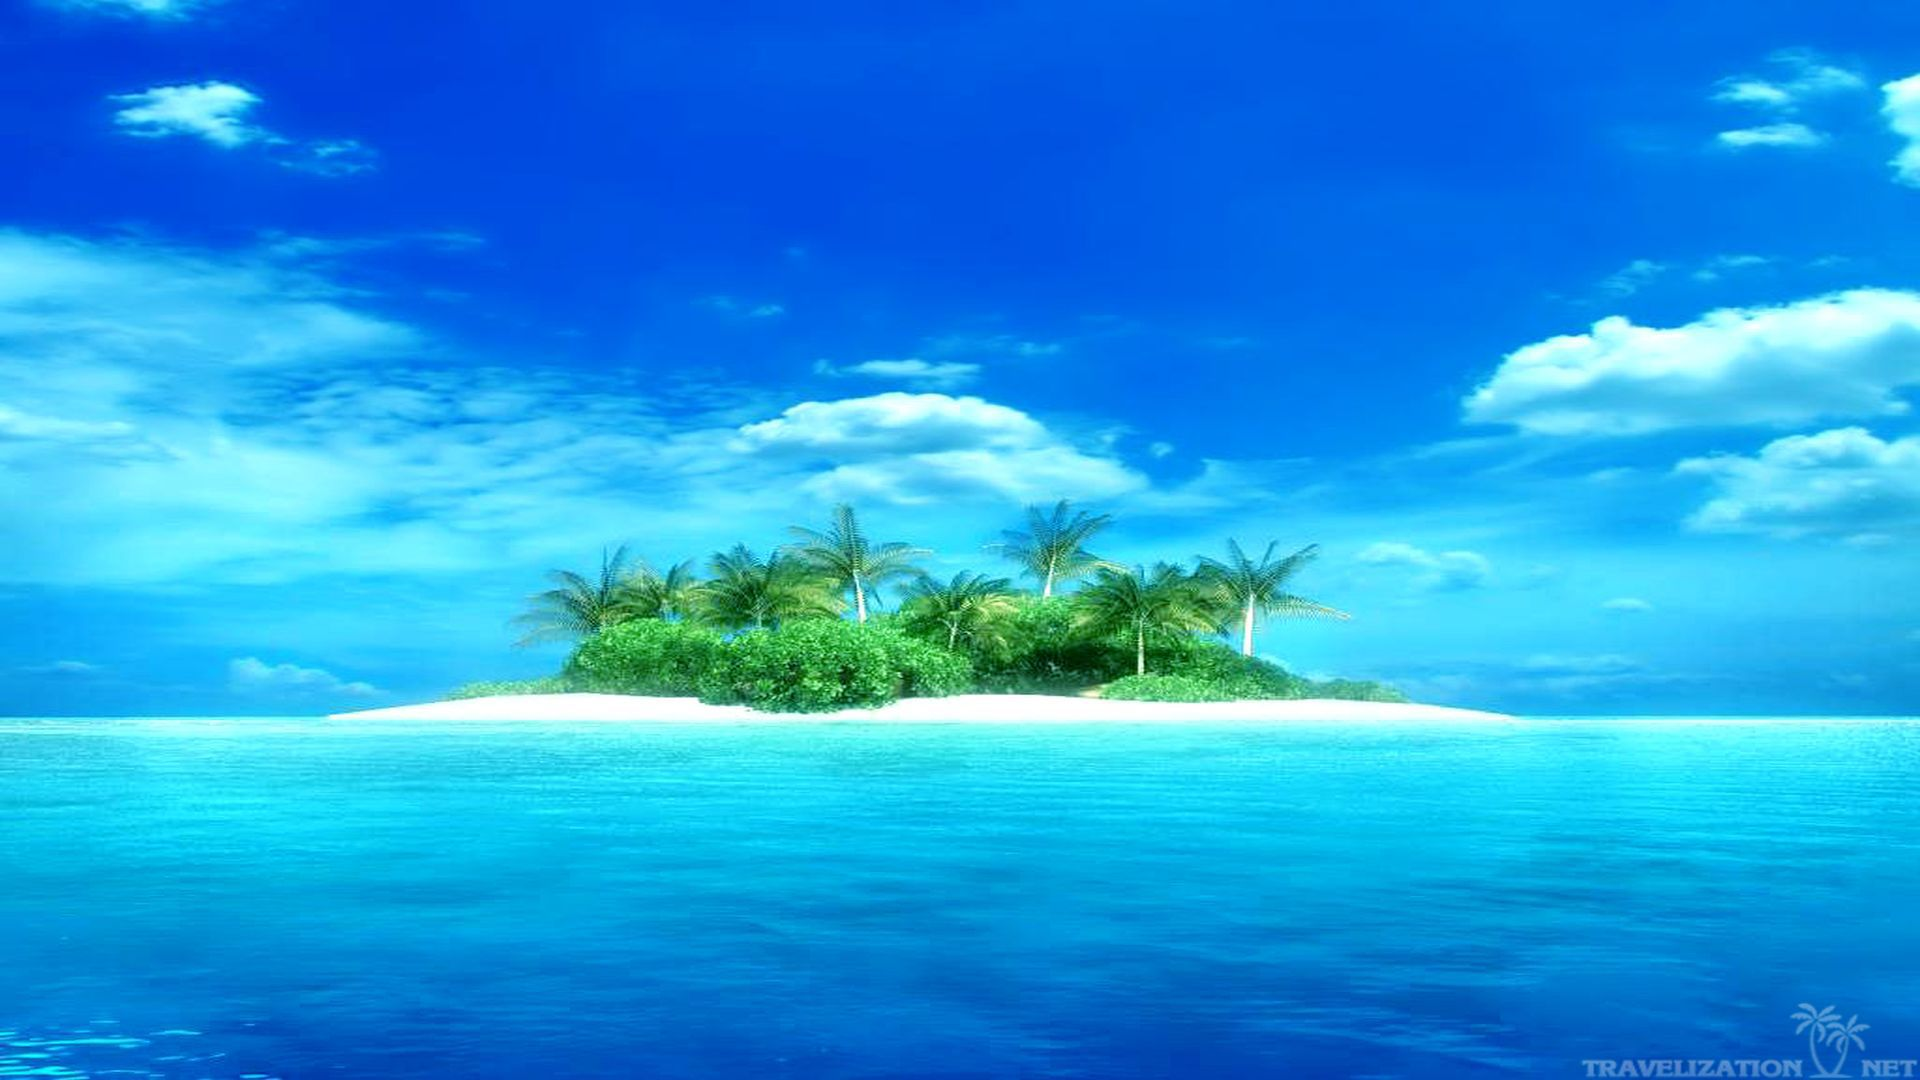 Hd Tropical Island Beach Paradise Wallpapers And Backgrounds: Island Pictures Wallpaper